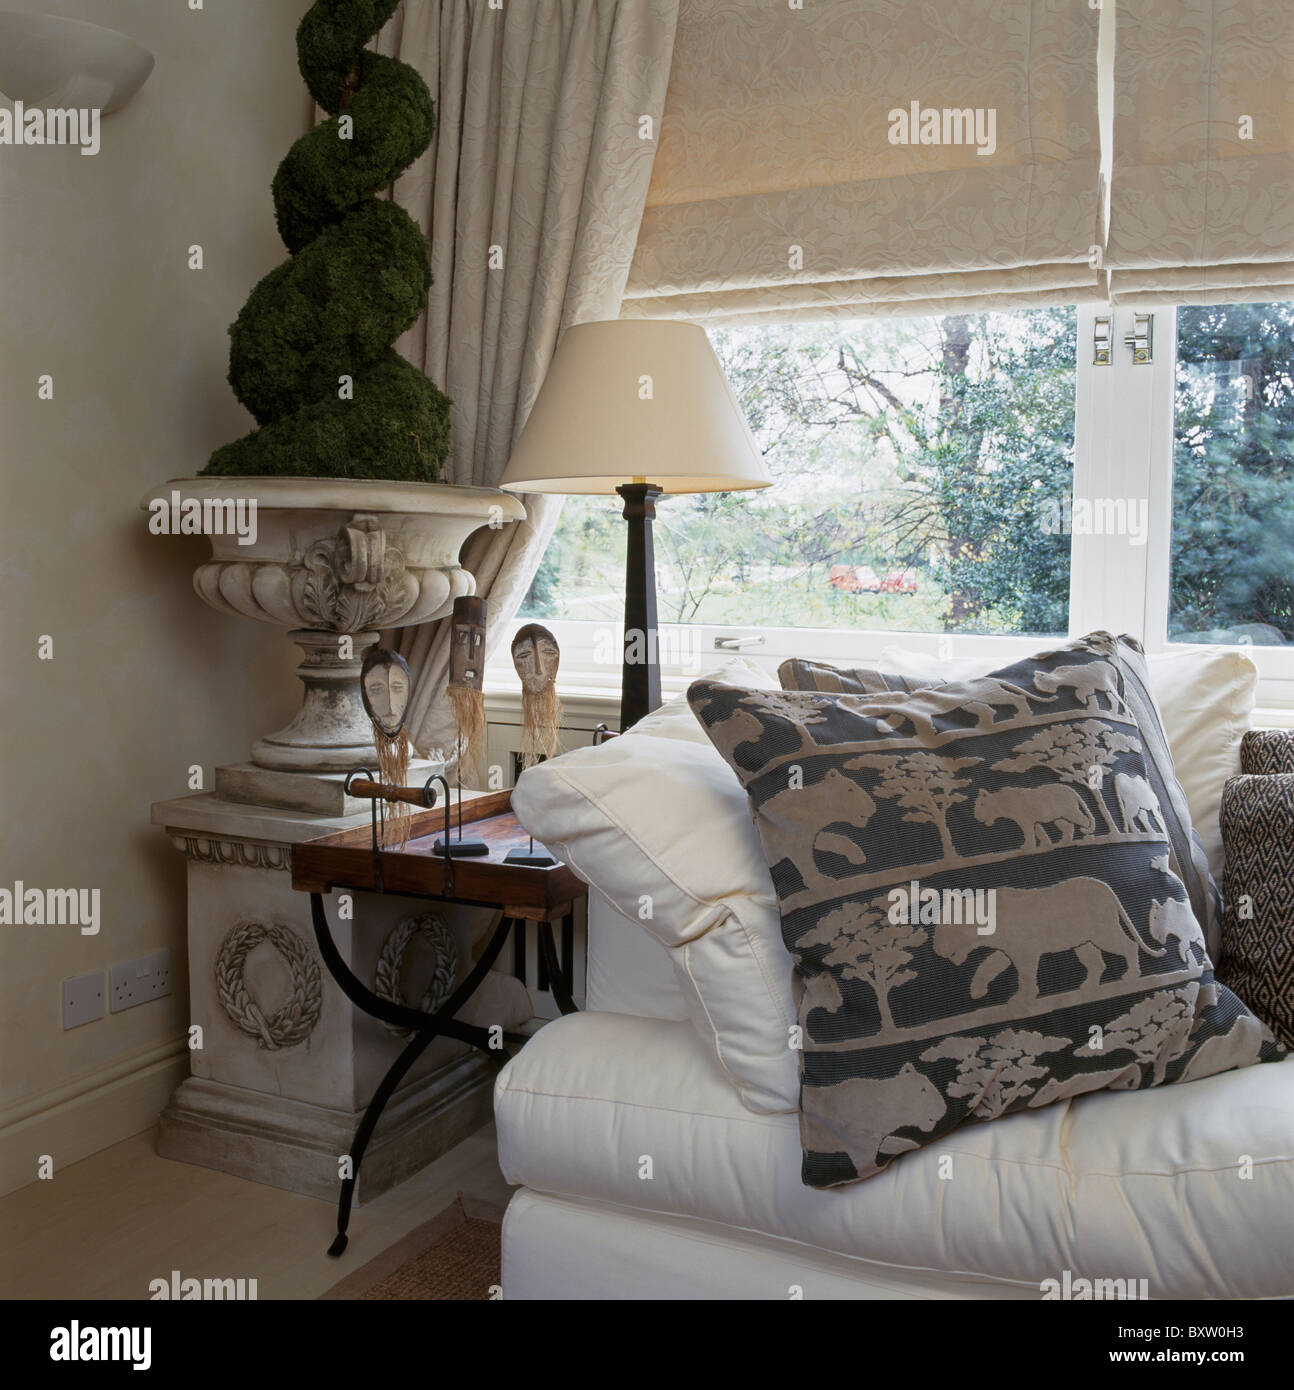 Cream sofas stockfotos cream sofas bilder seite 2 alamy for Sofa vor fenster